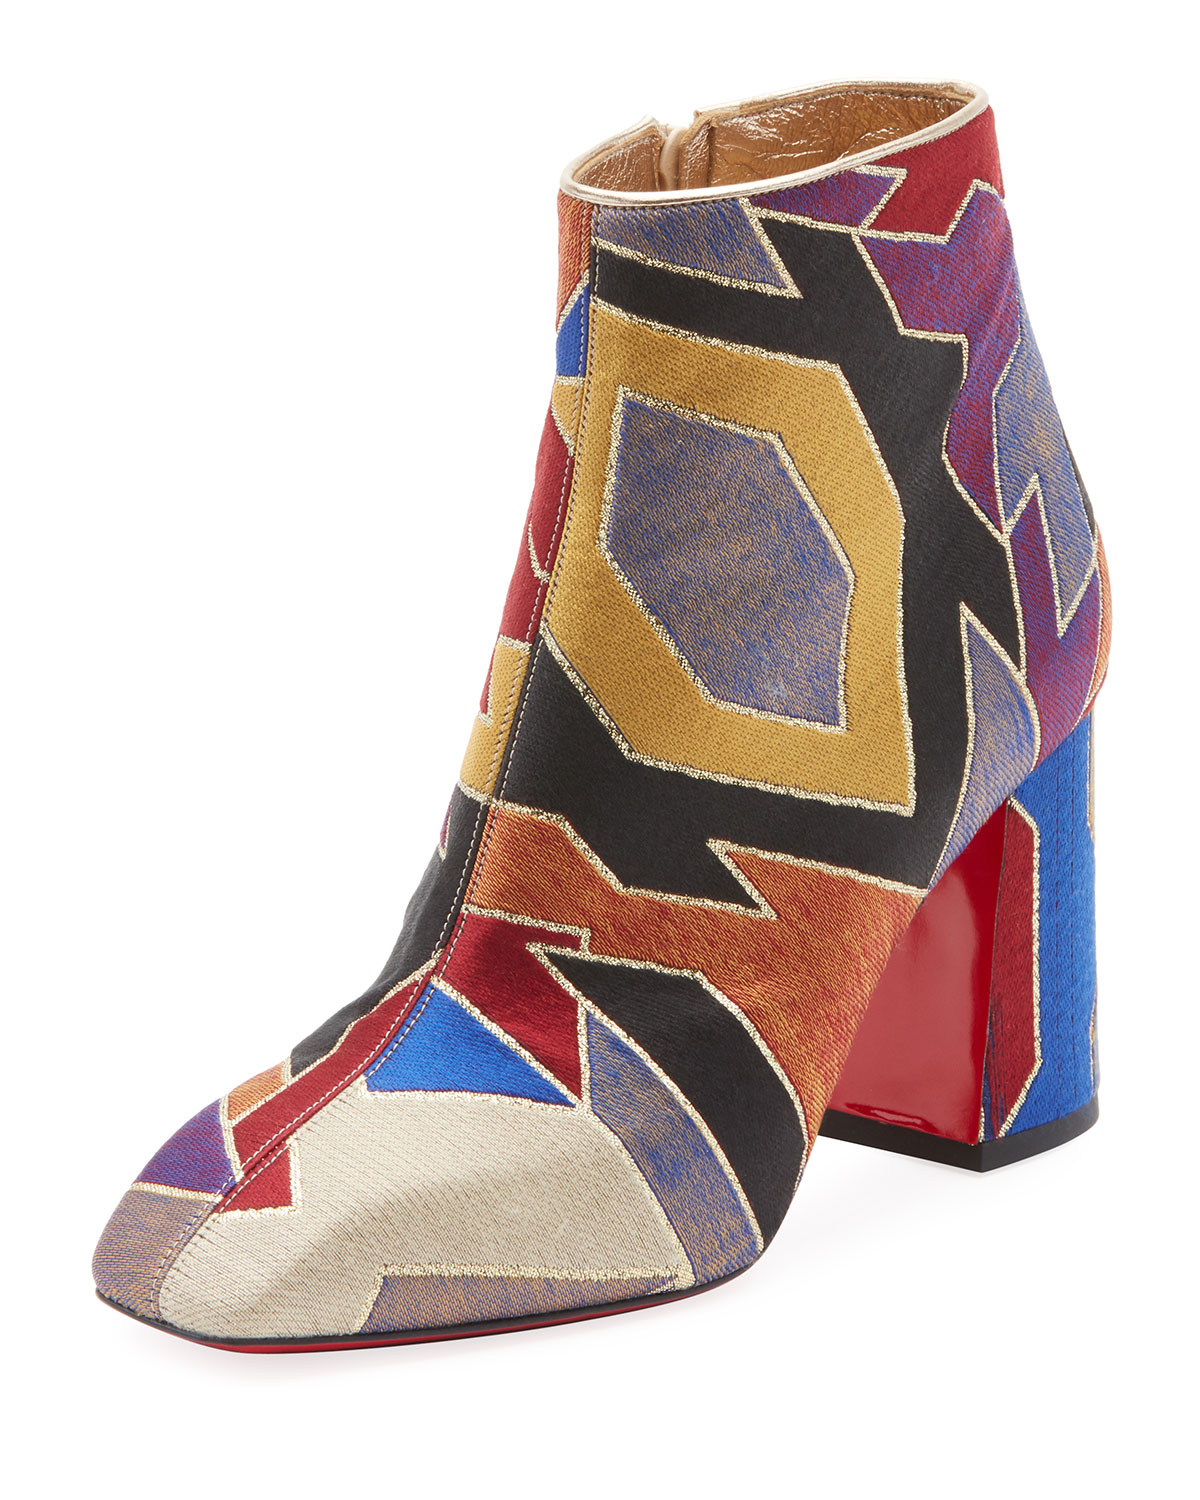 CHRISTIAN LOUBOUTIN HILCONICO GEOMETRIC SILK JACQUARD RED SOLE BOOTIE